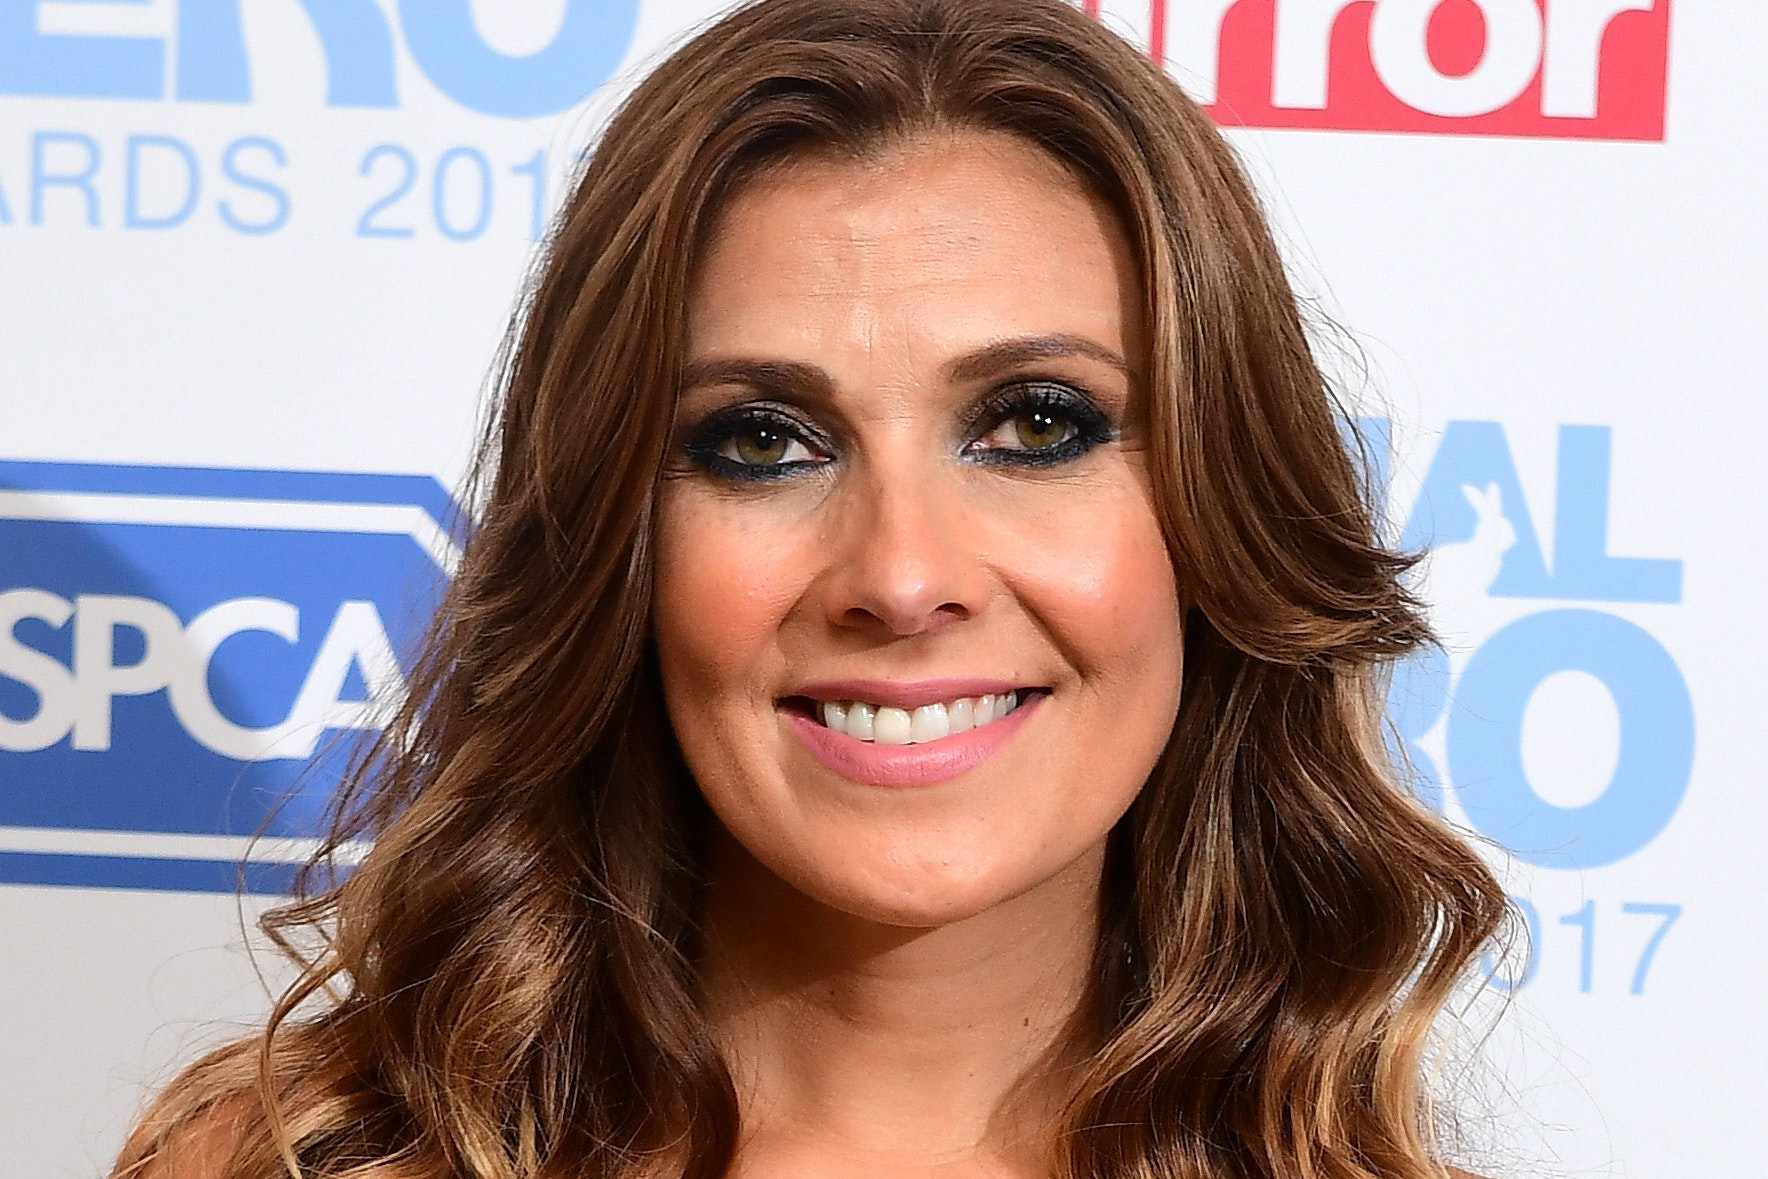 Kym Marsh self isolating after catching Covid